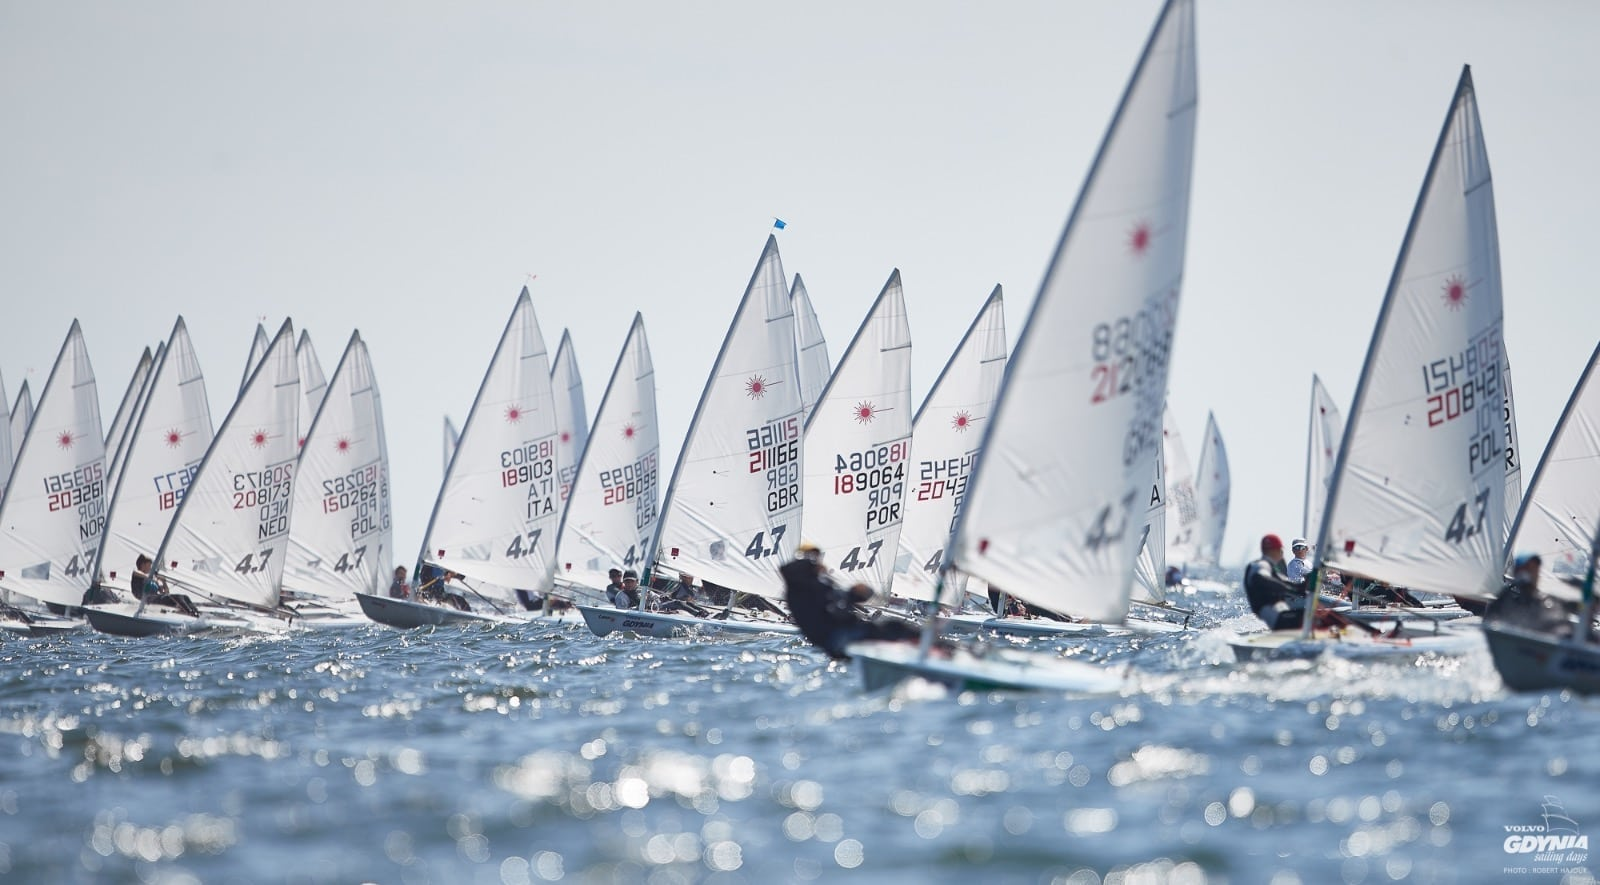 Oman Sail youth team emerges from Laser World Championships with new confidence